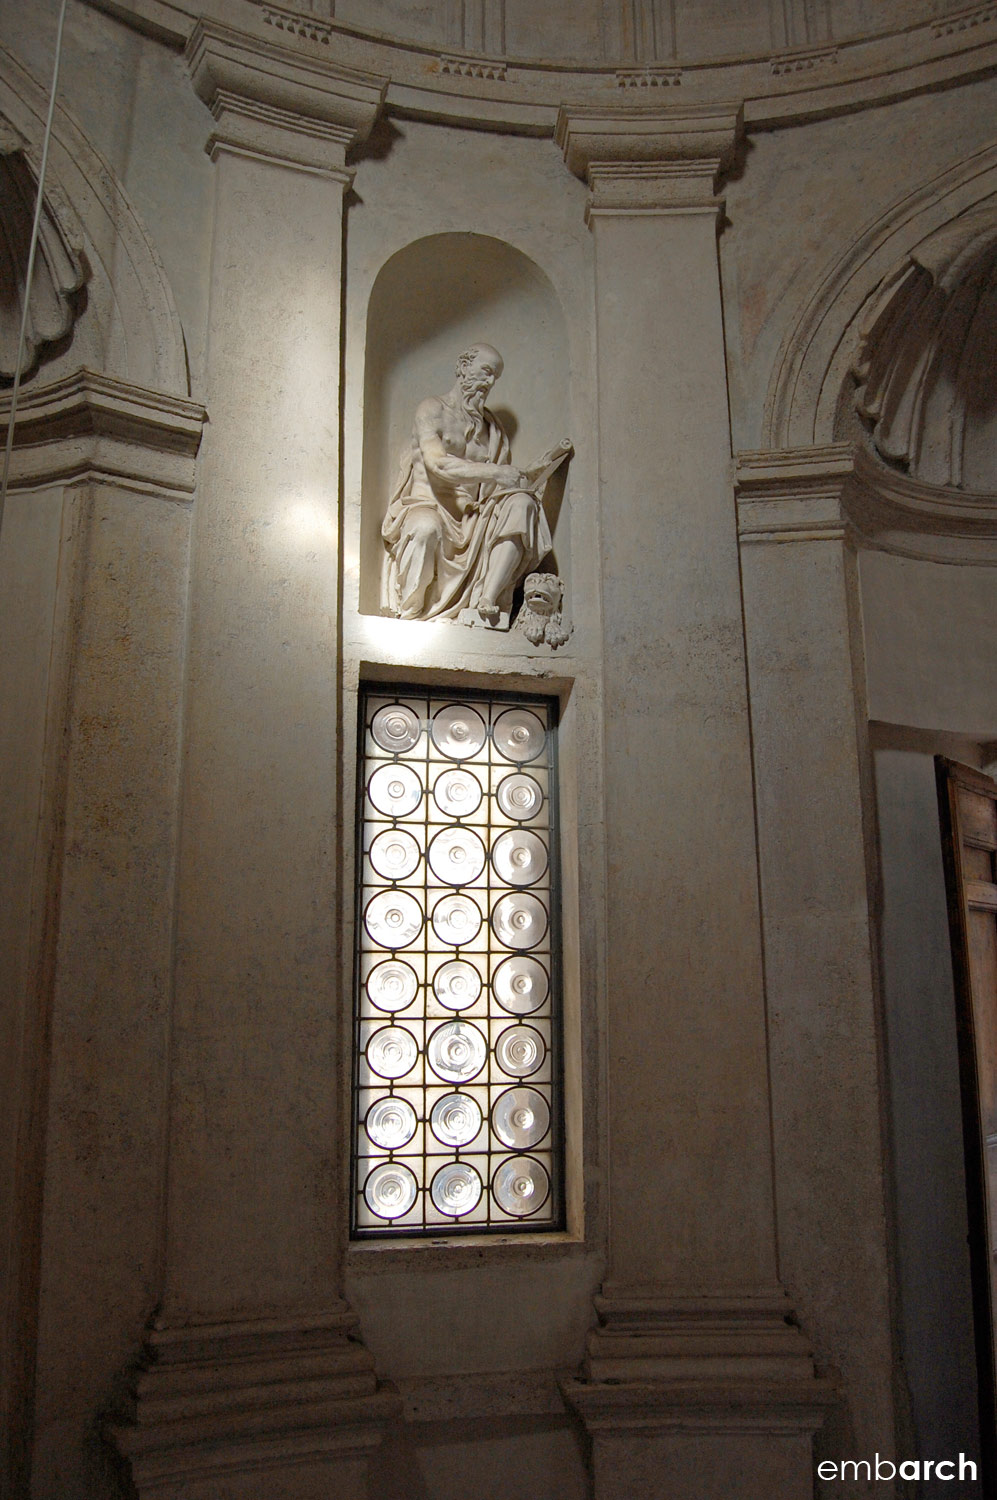 Tempietto - interior detail